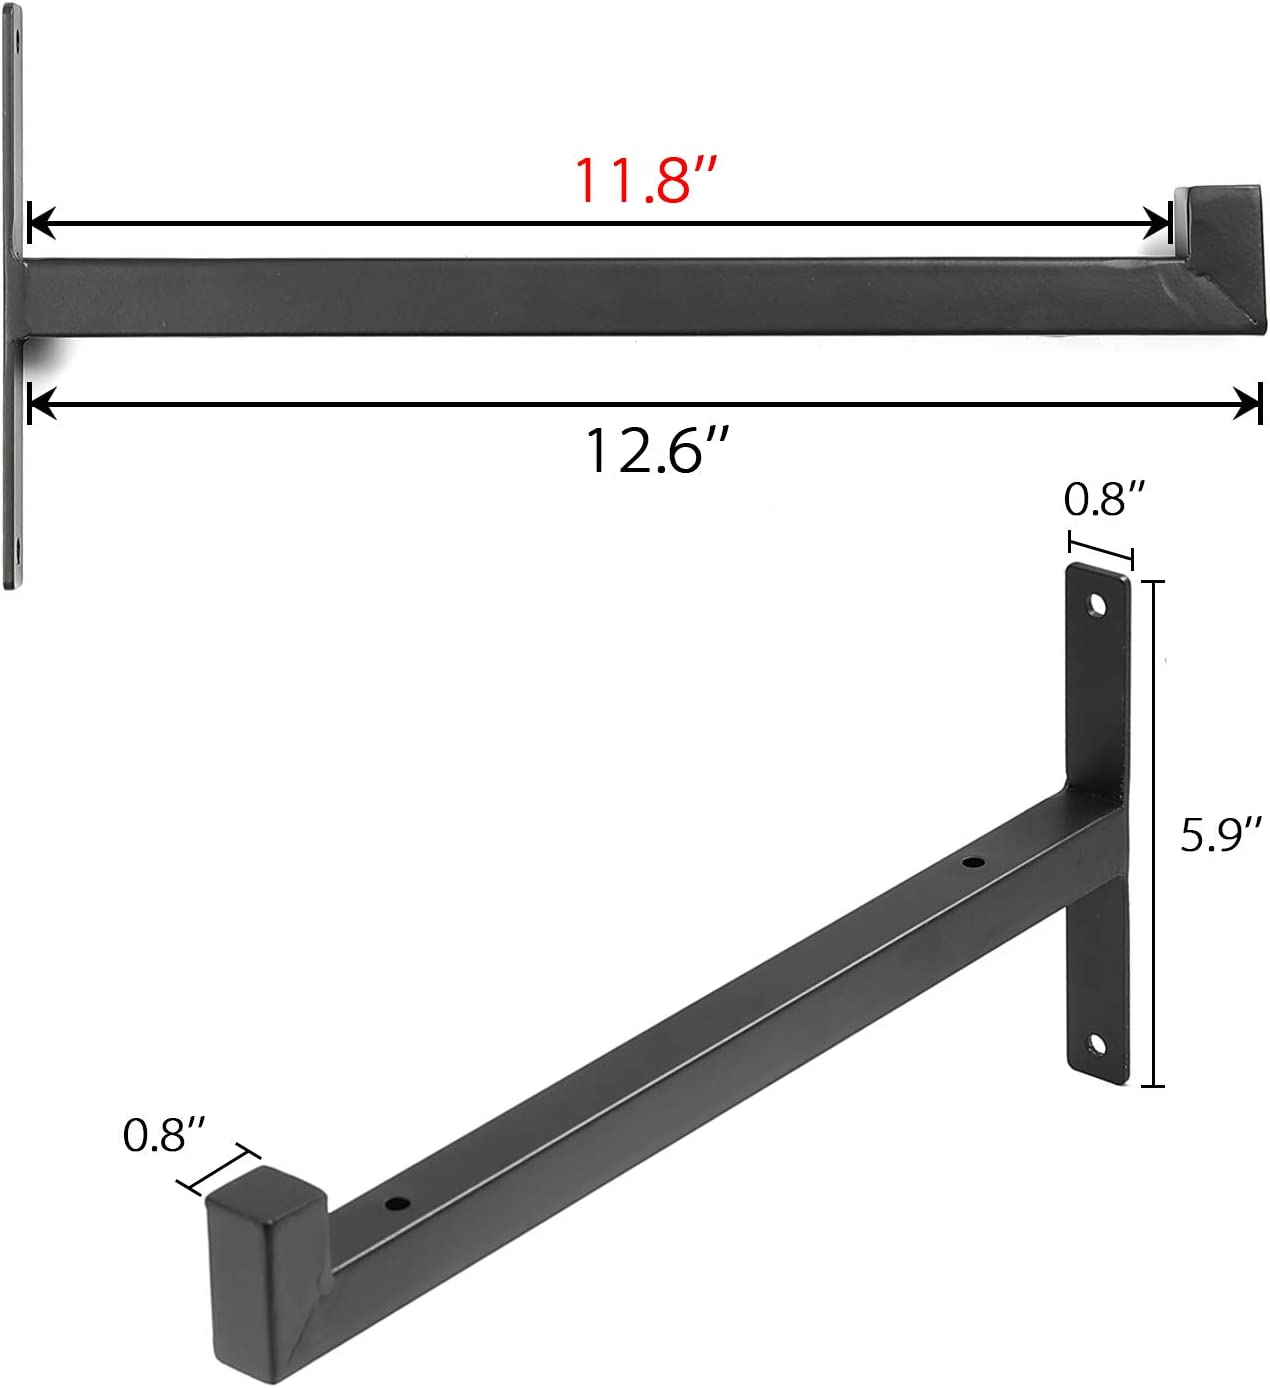 12 Inch Shelf Brackets with Lip, Heavy Duty Black Metal Industrial Shelving Bracket, Wall Mounted Rustic Farmhouse Iron Floating Support for DIY Open Shelves, Set of 4: Home Improvement